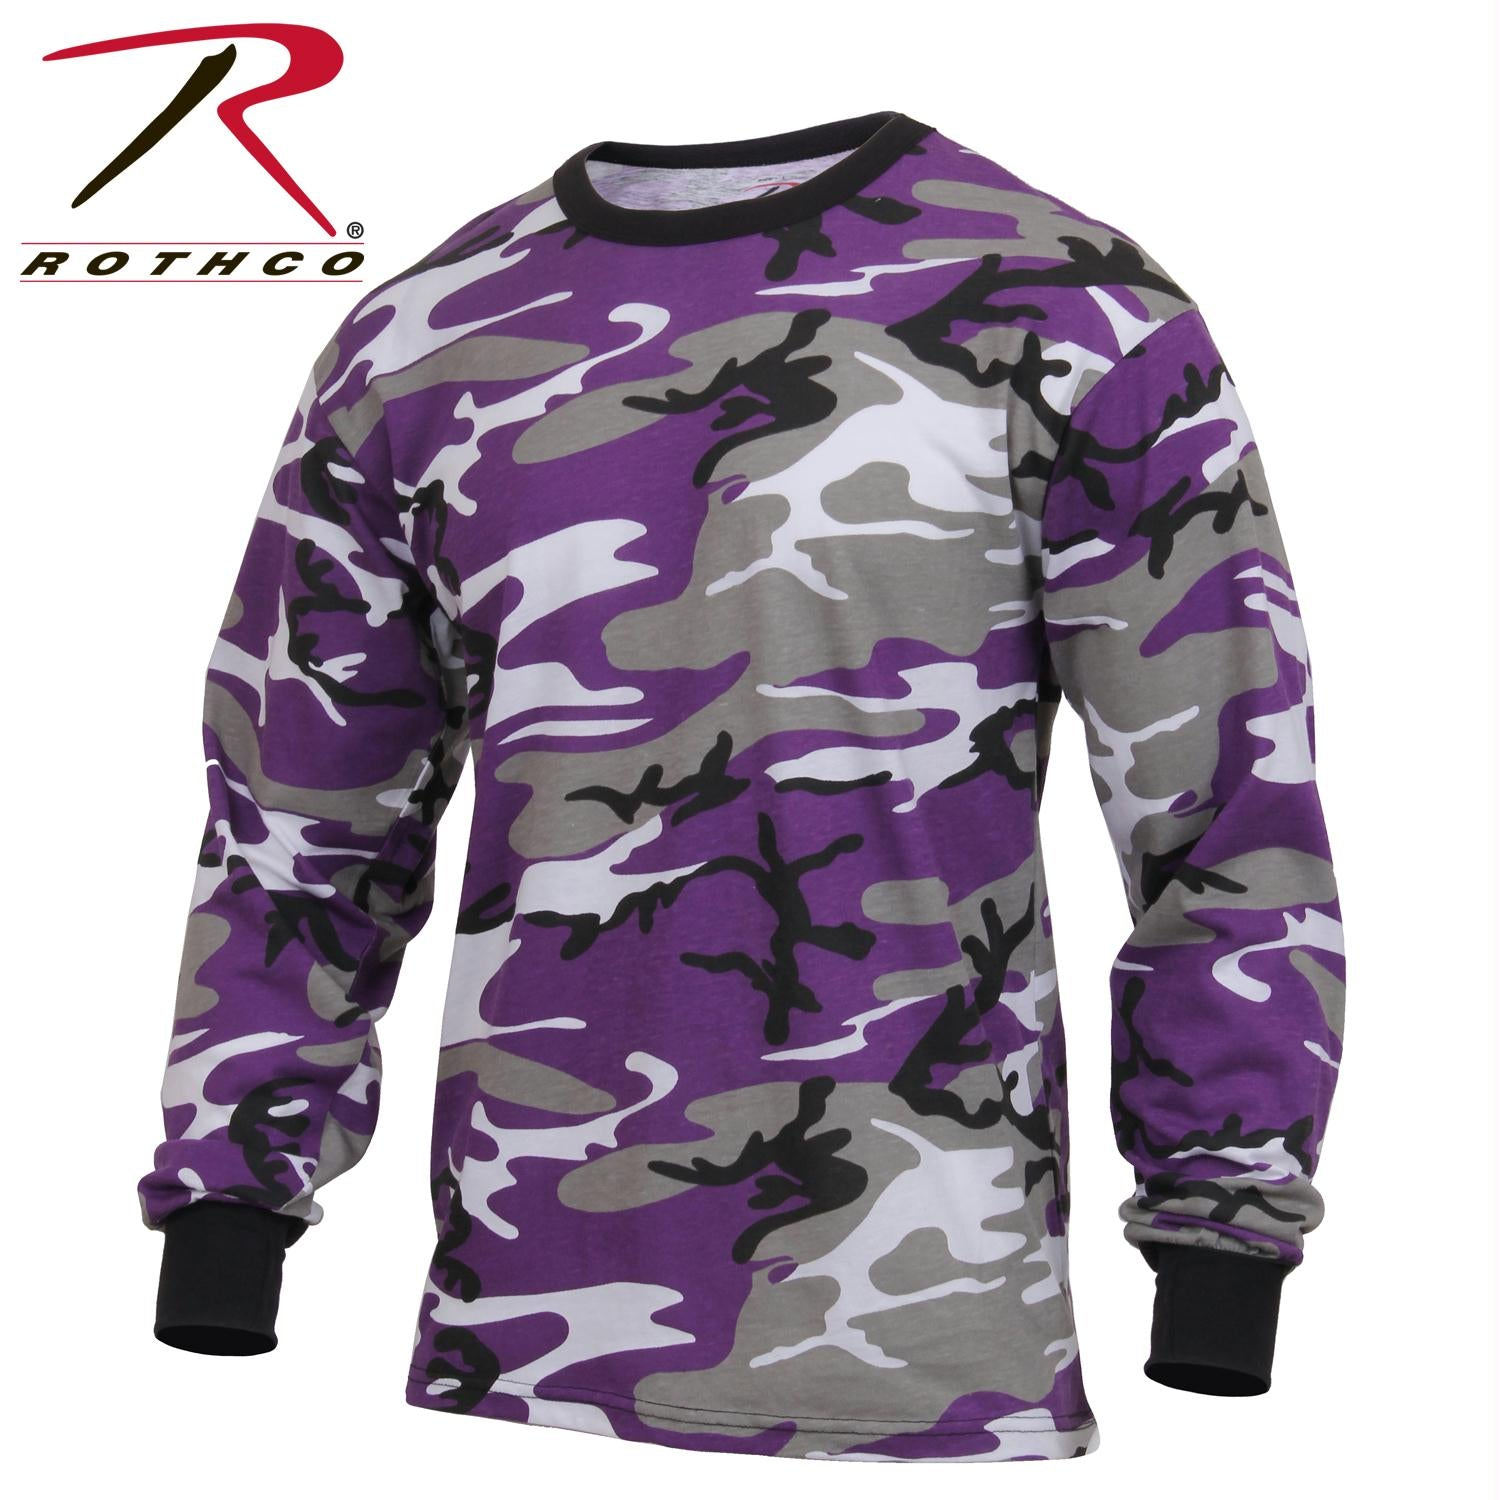 Rothco Long Sleeve Colored Camo T-Shirt - Midnight Blue Camo / XL